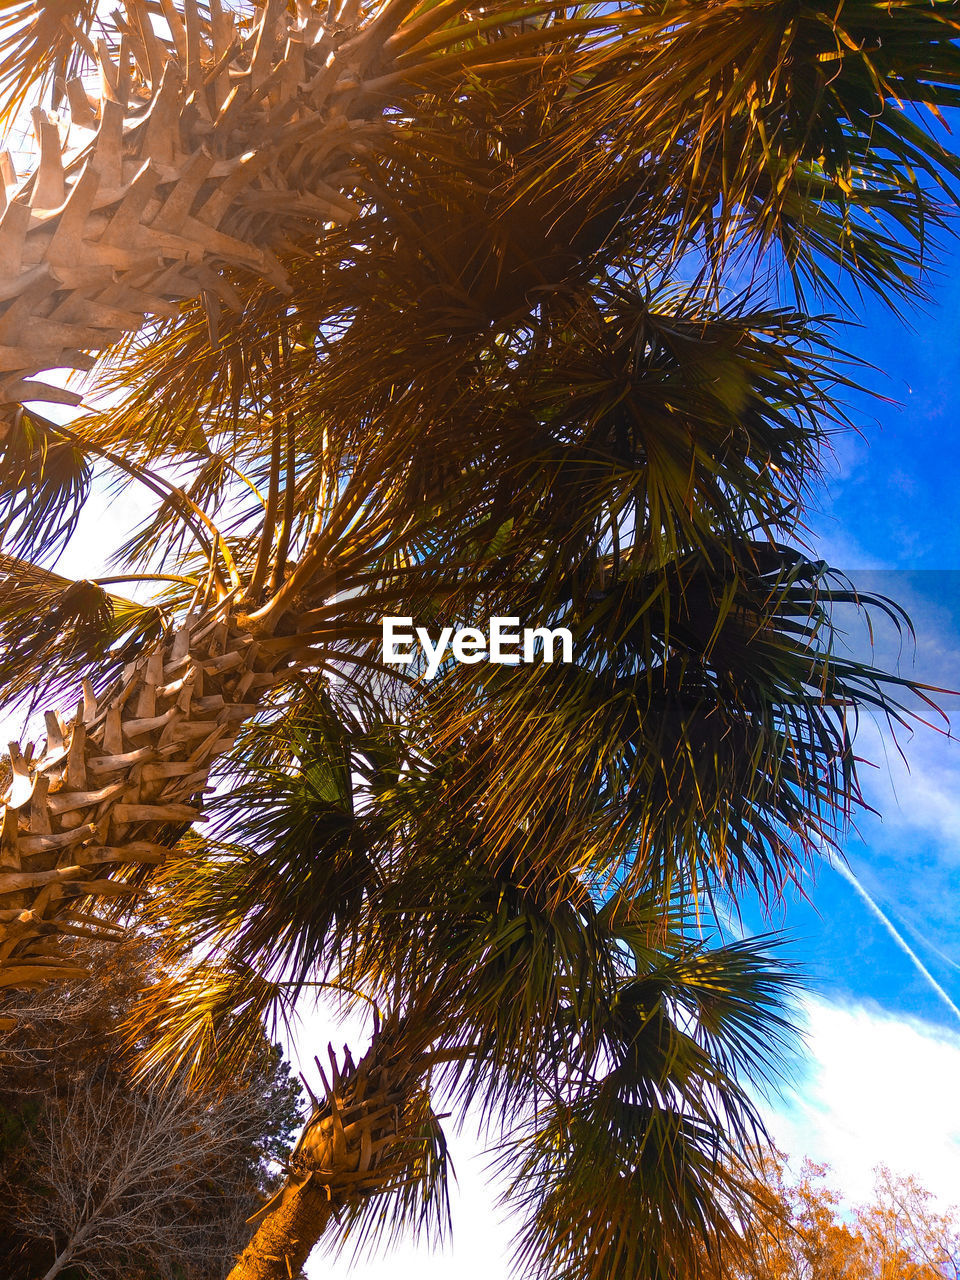 tree, low angle view, palm tree, growth, nature, no people, day, outdoors, beauty in nature, tree trunk, branch, sky, close-up